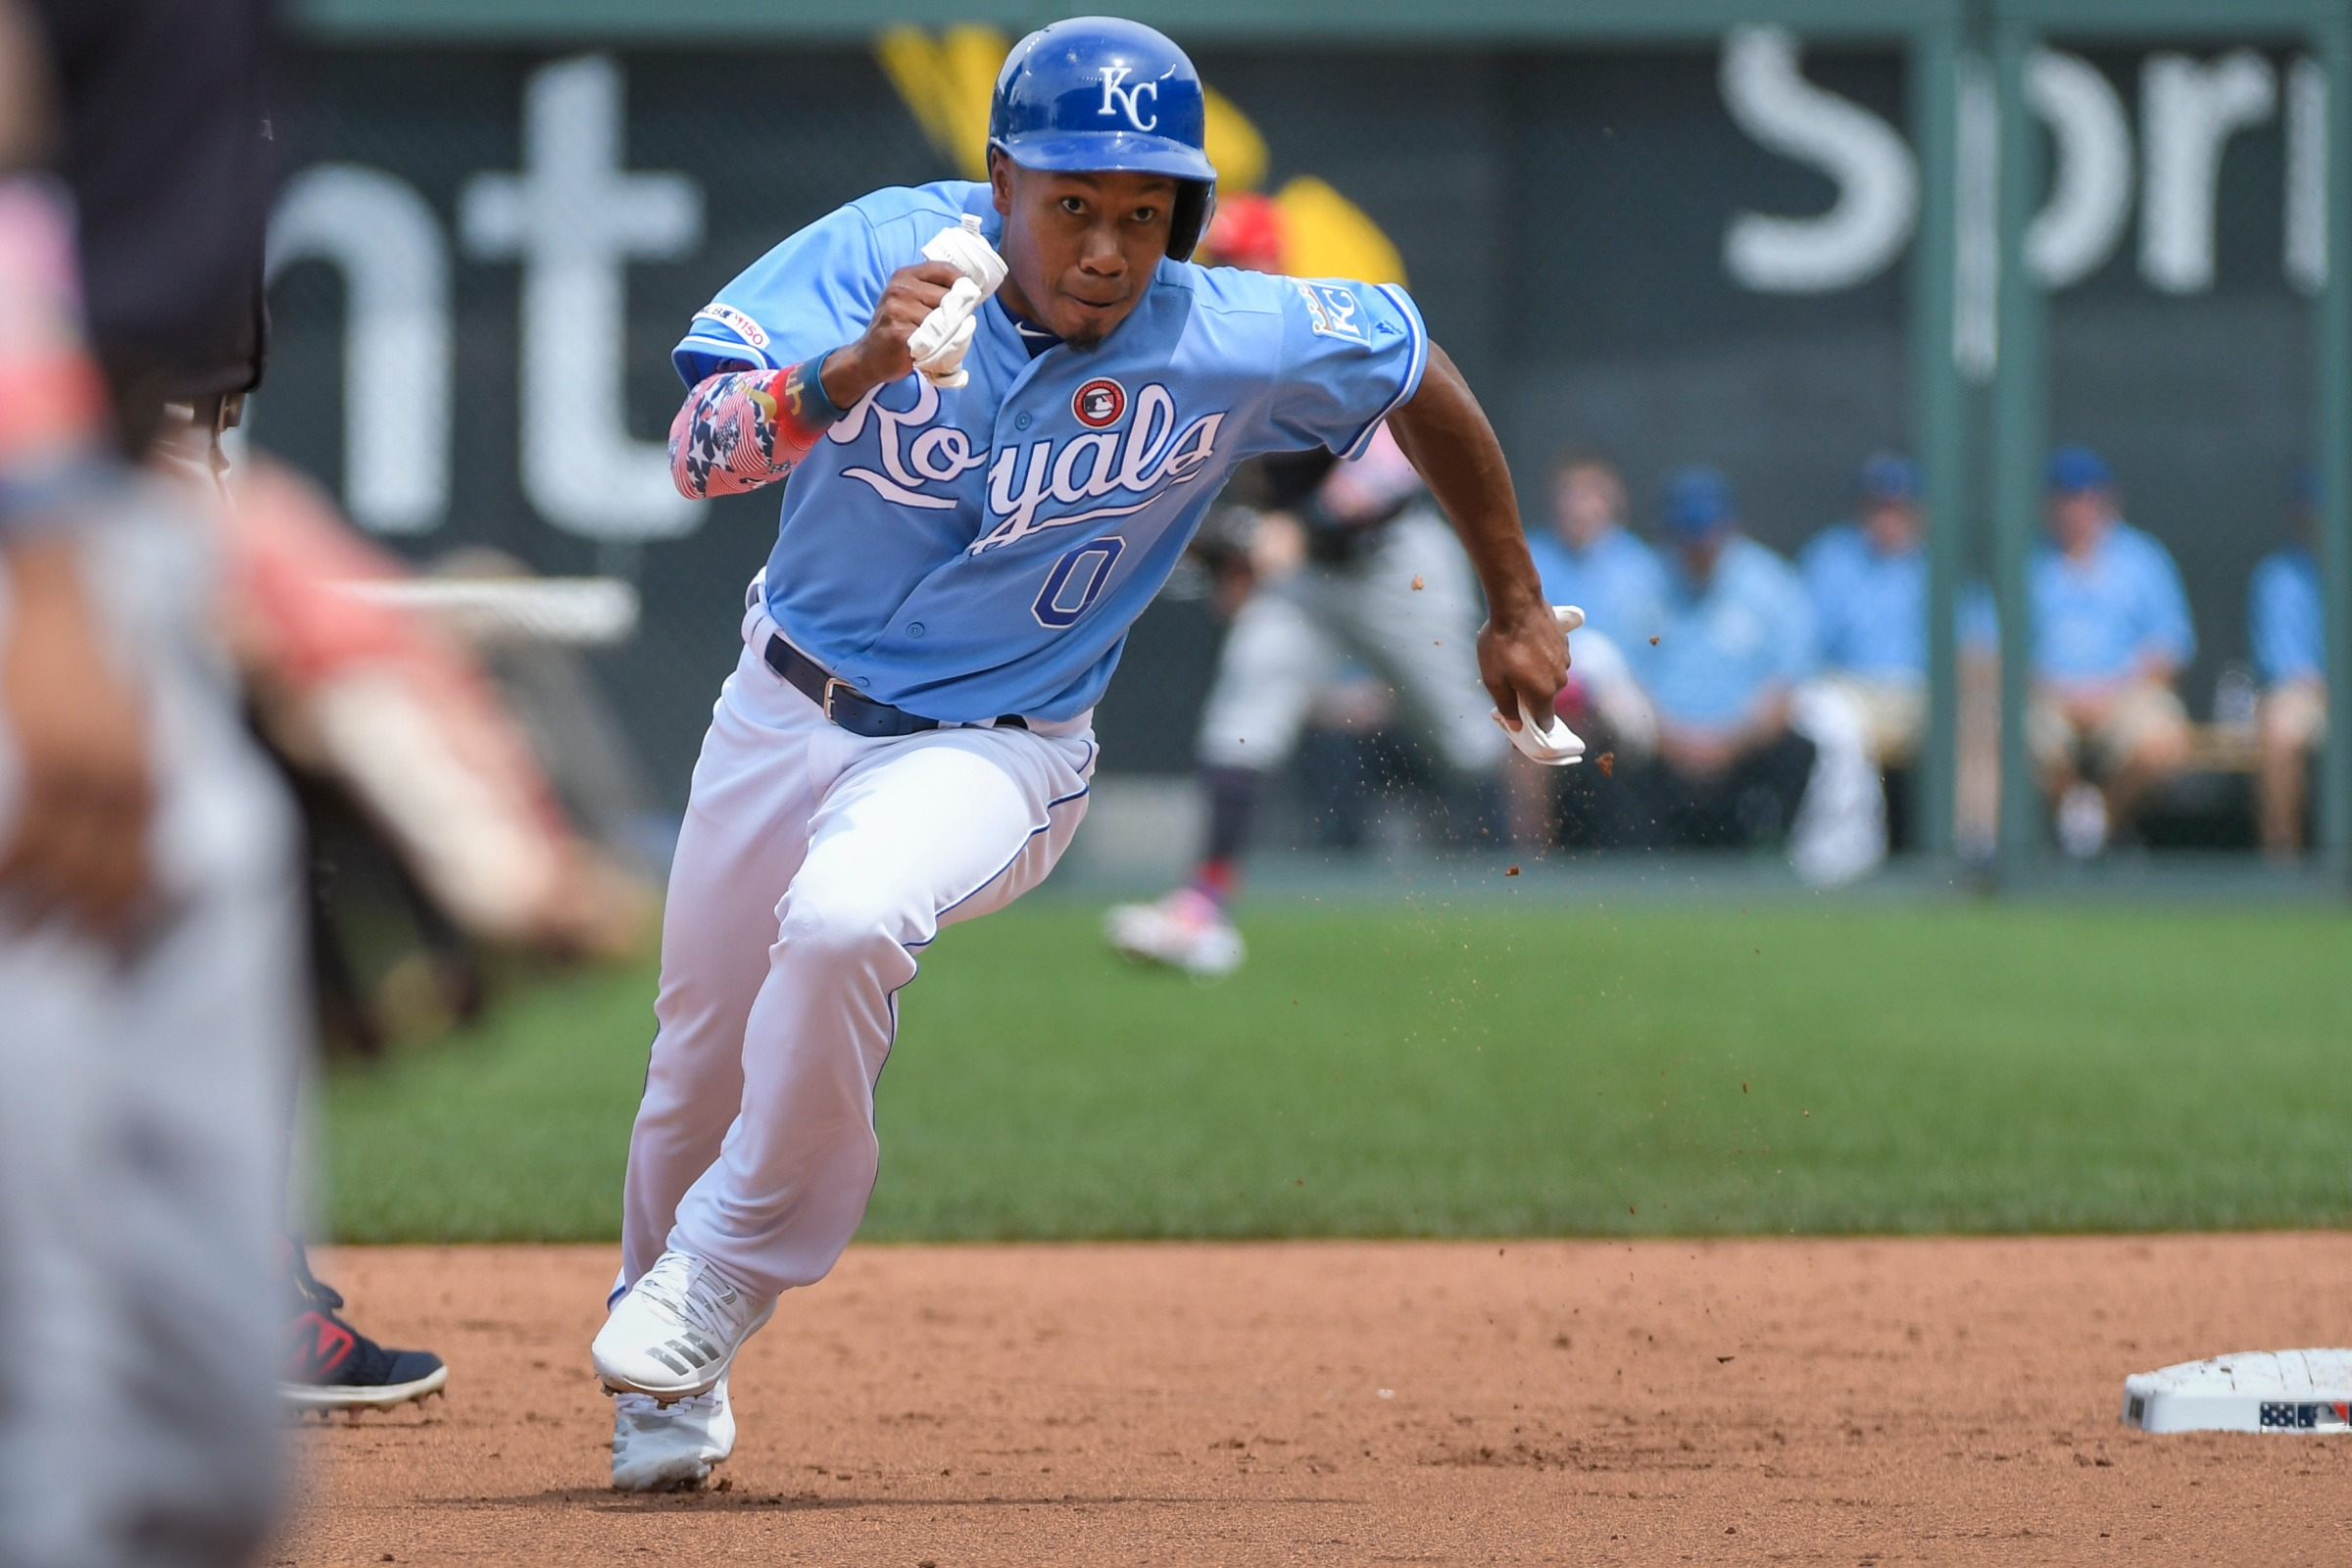 Terrance Gore taking an extra base, with a great deal of vigor, in a 2019 Royals game.